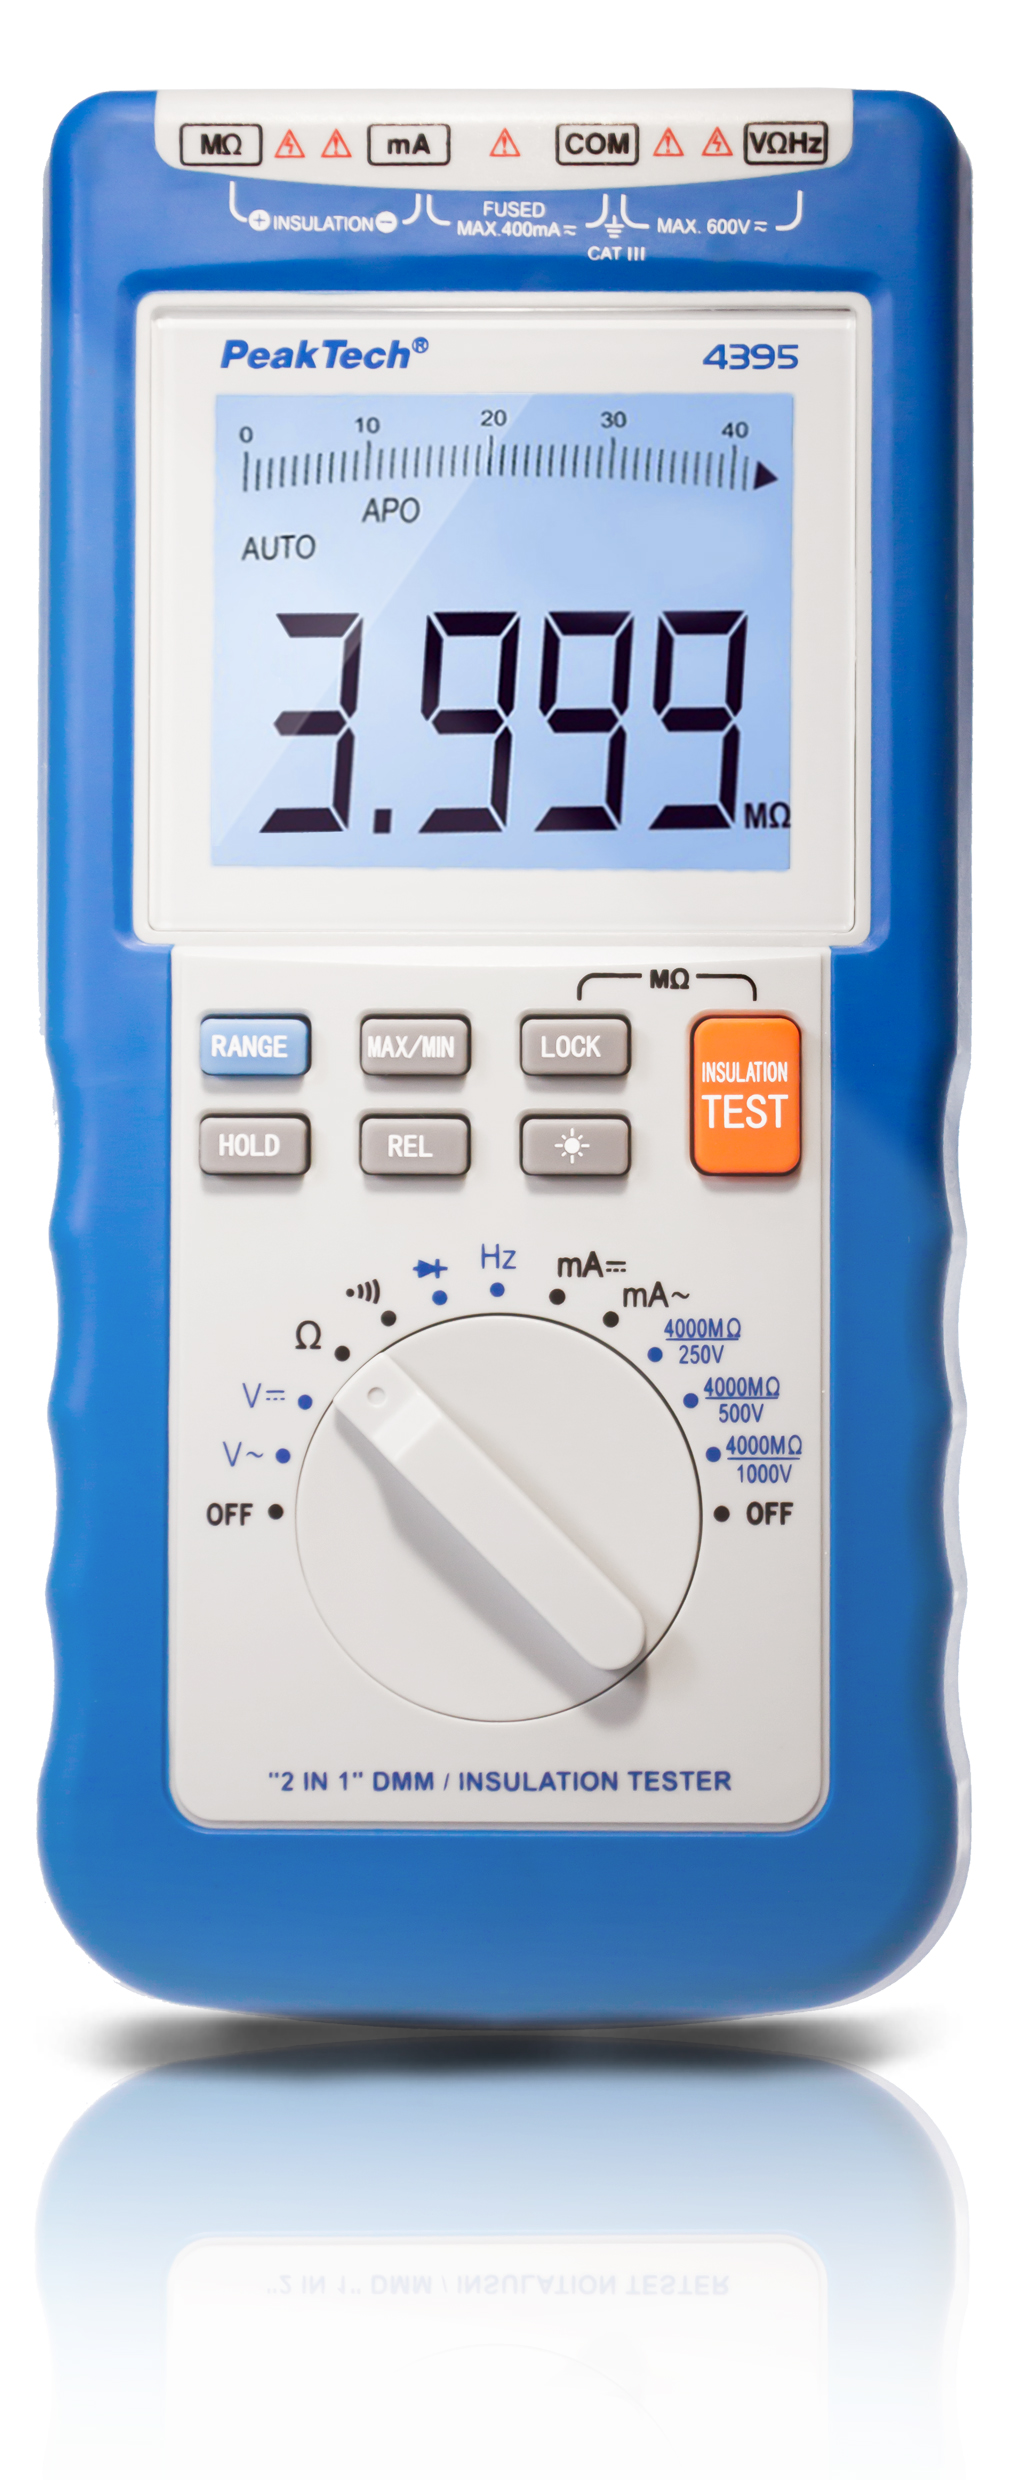 «PeakTech® P 4395» 2 in 1 DMM/insulation Tester, 250/500/1000 V